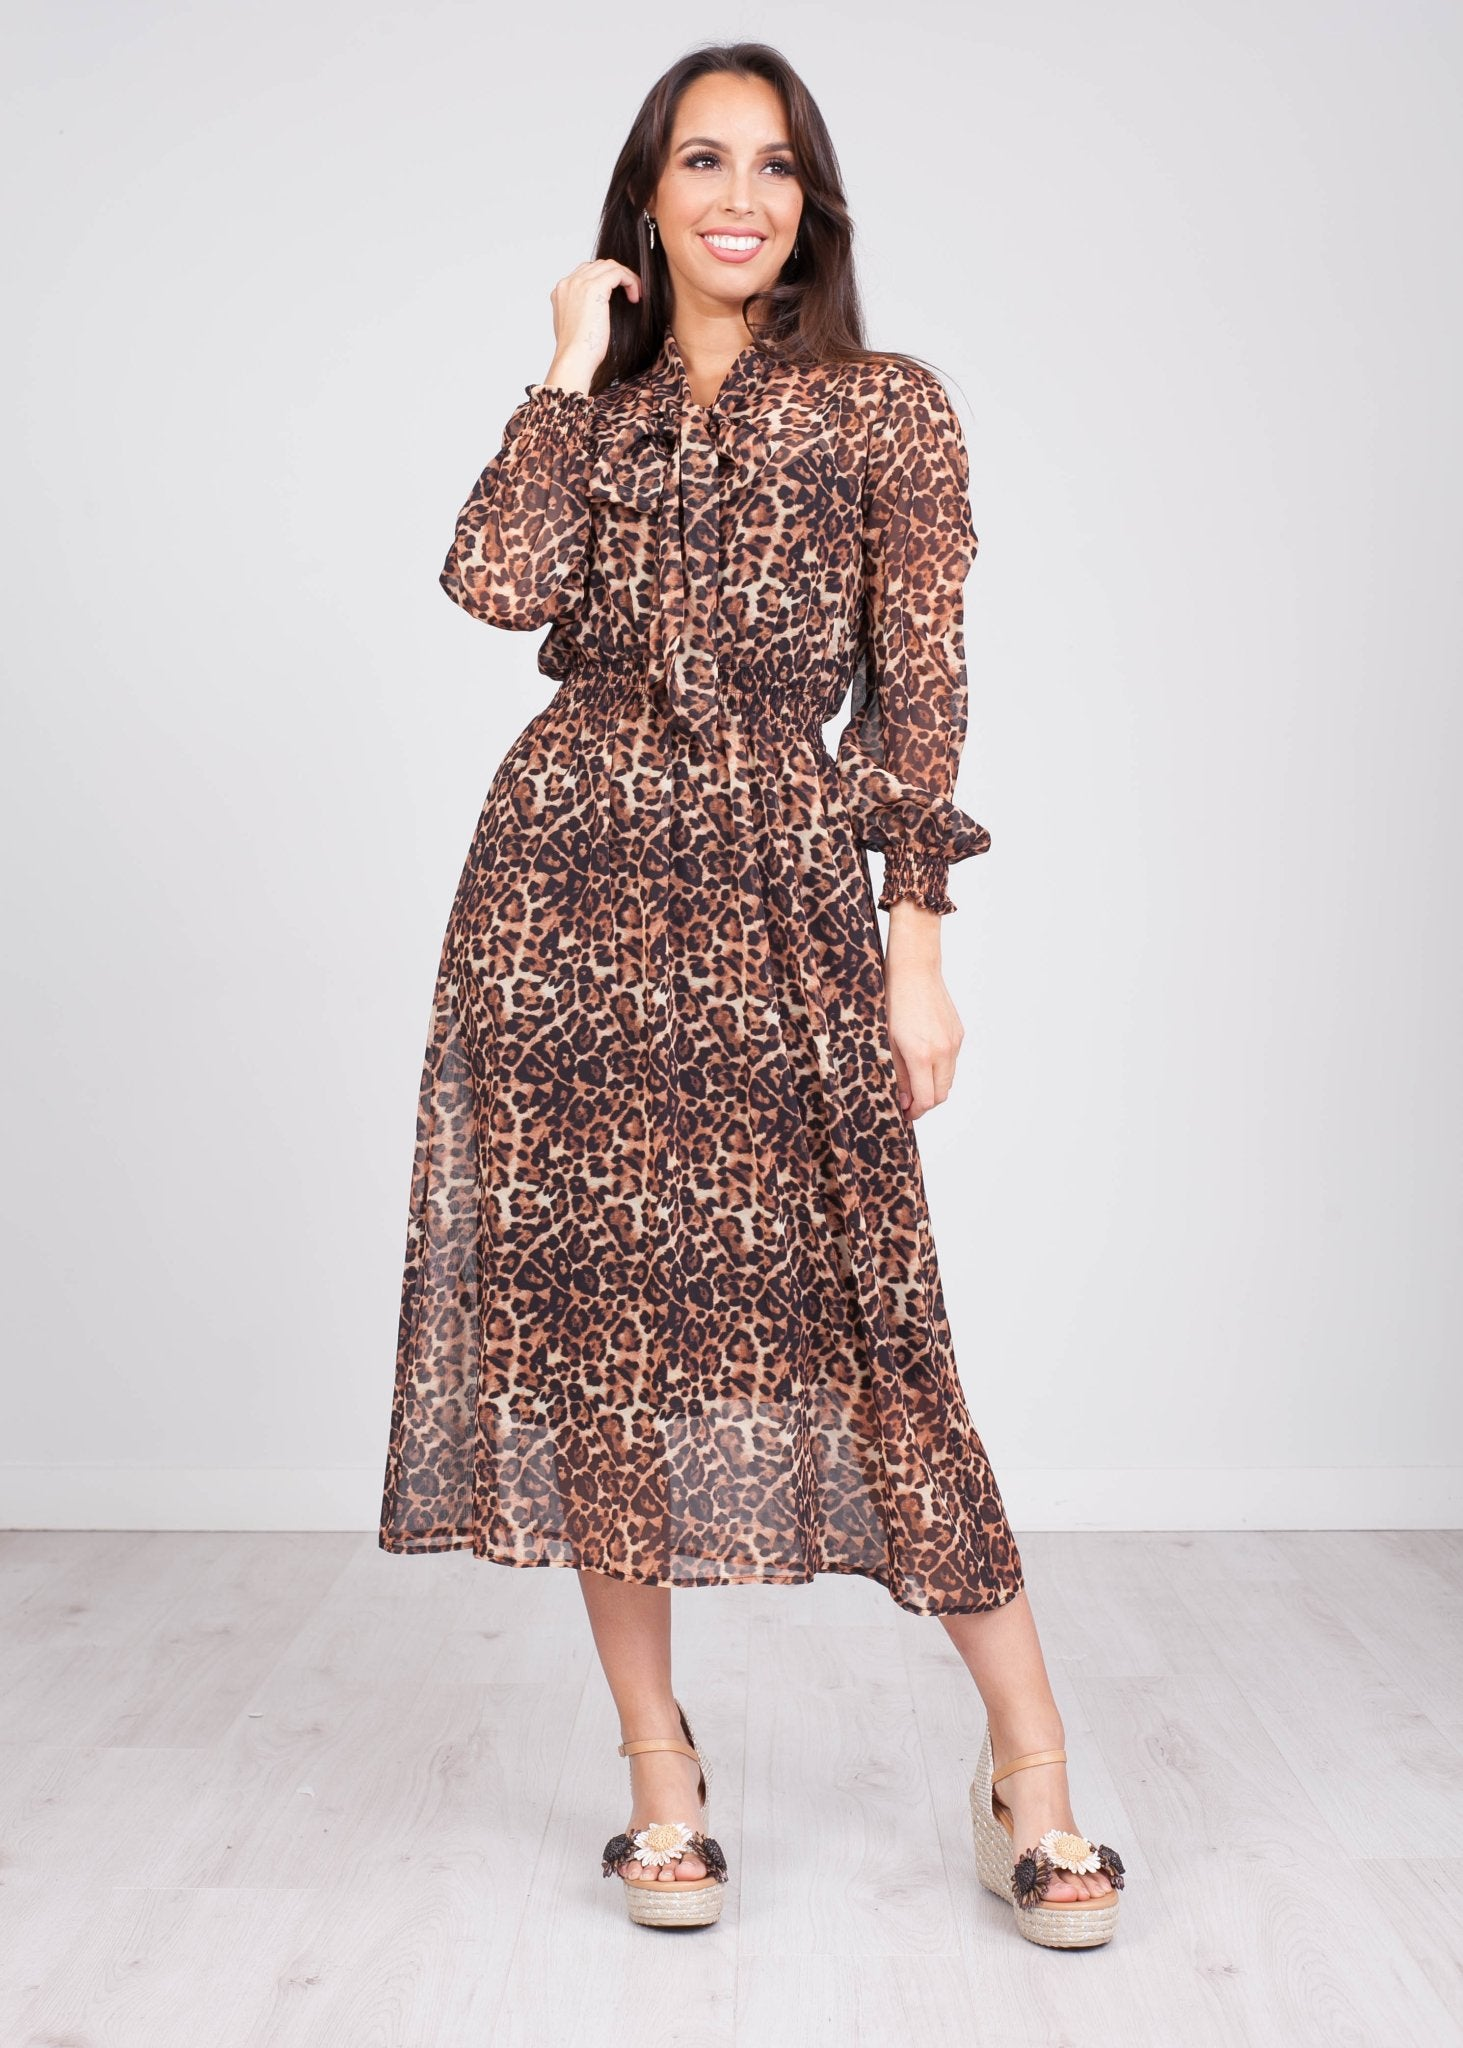 Charlee Animal Print Dress - The Walk in Wardrobe